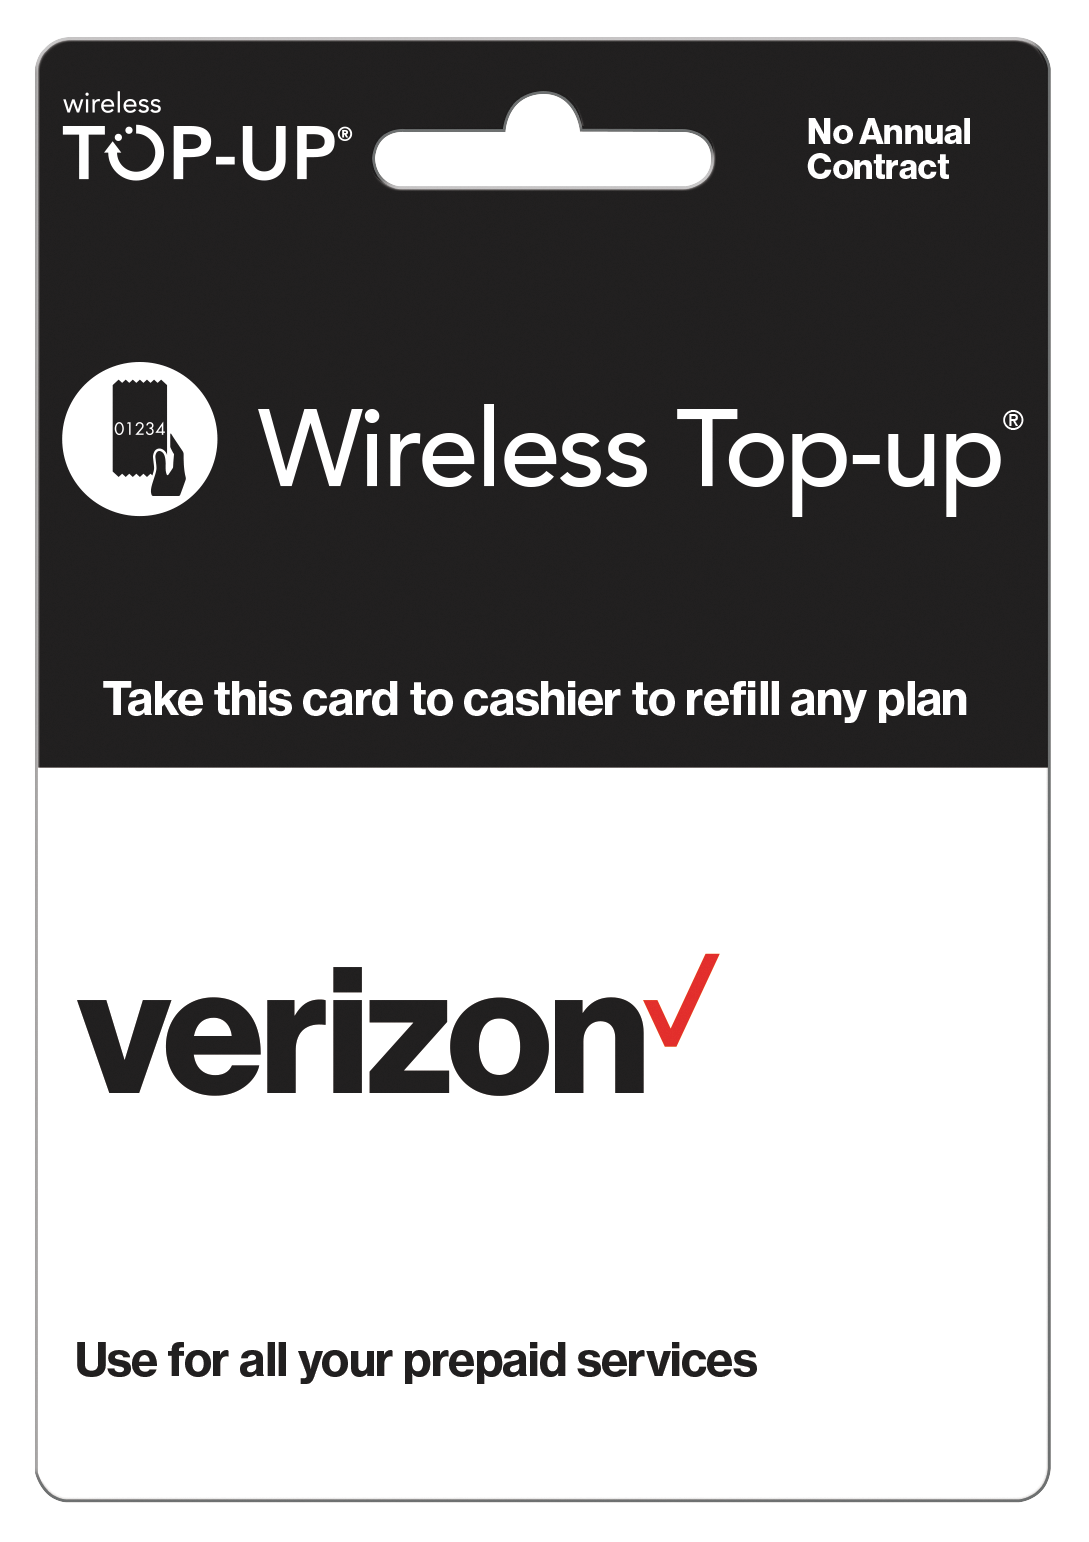 C3864_Verizon_2019_Top_Up_Pin_Receipt_711_M6NS_Placebo_v3.png